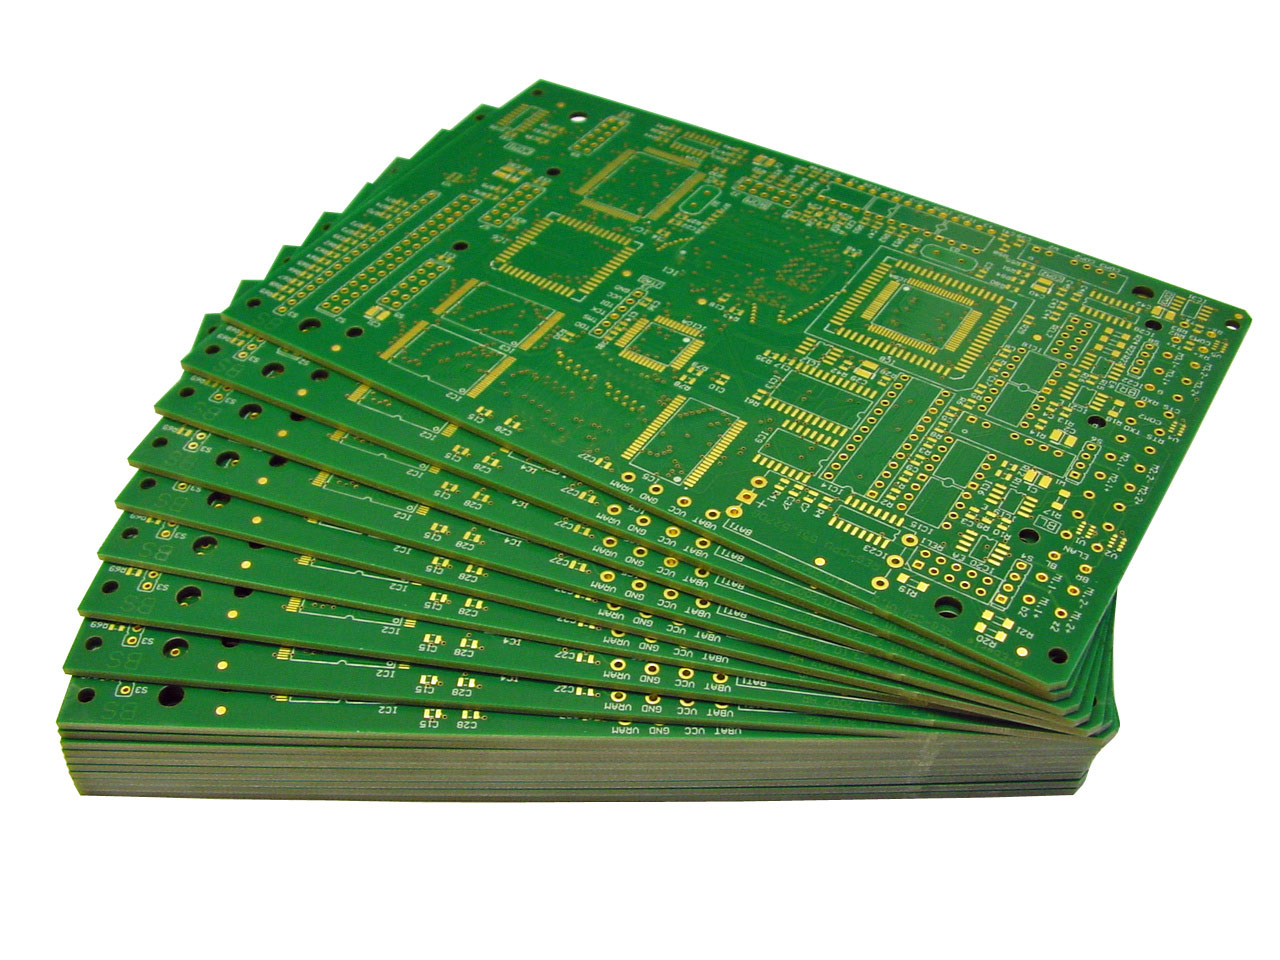 Printed Circuit Board Pricing Multi Boards Printedcircuitboardassemblylargejpg Calculate Online